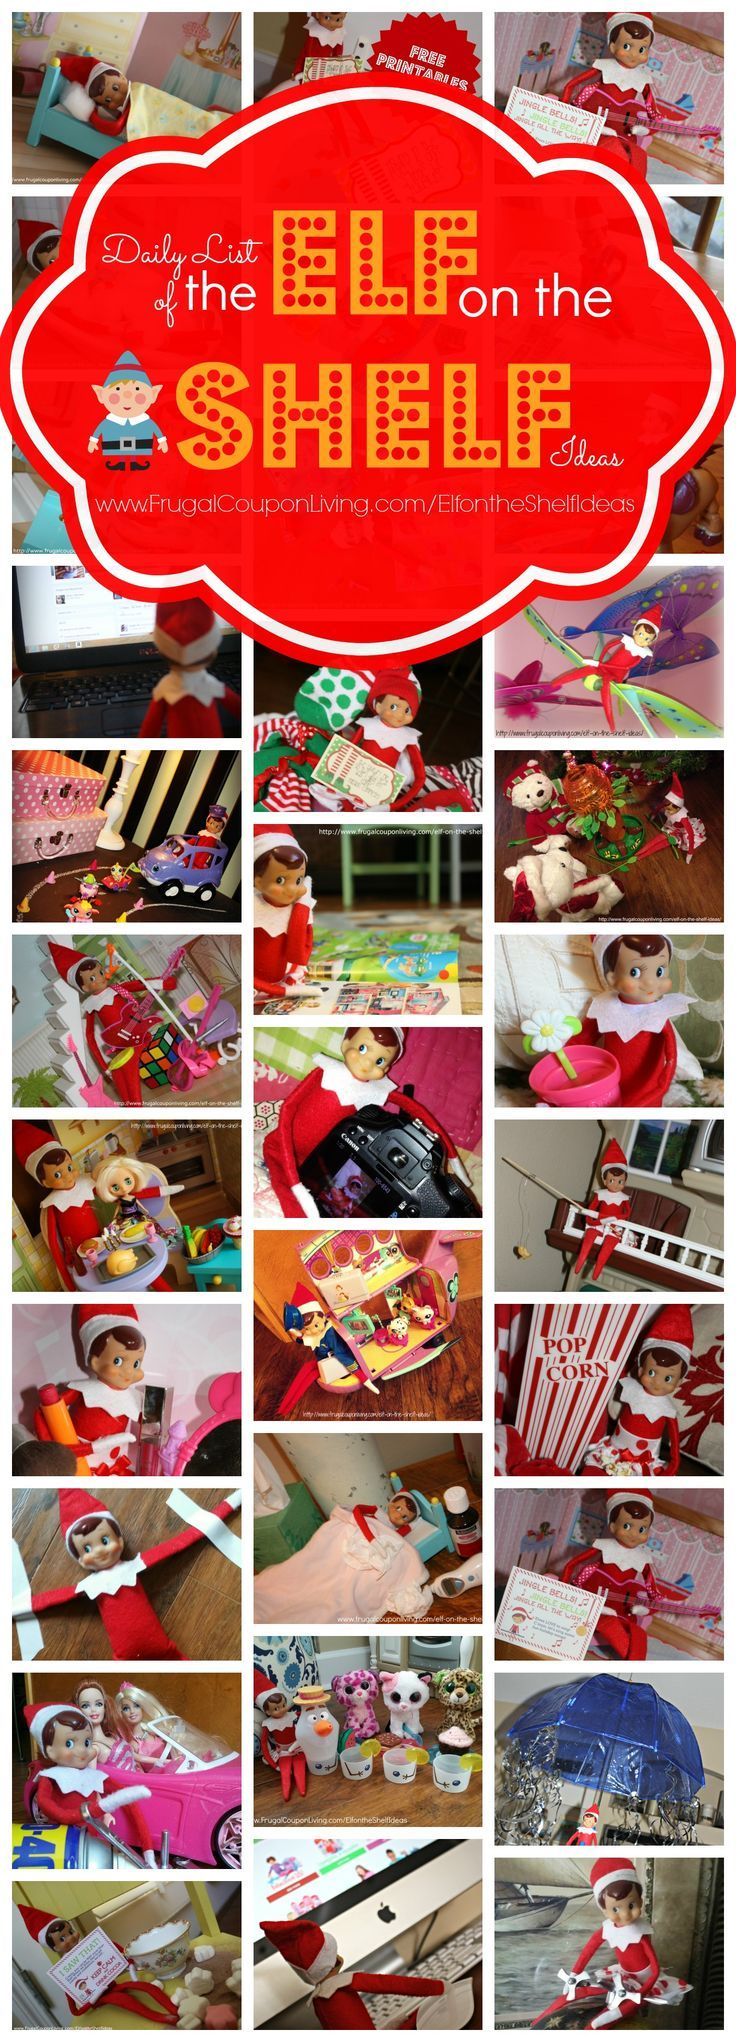 Dozens of Daily Elf on the Shelf Ideas on Fugal Coupon Living. New ideas for the Elf on the Shelf every day in November and December.